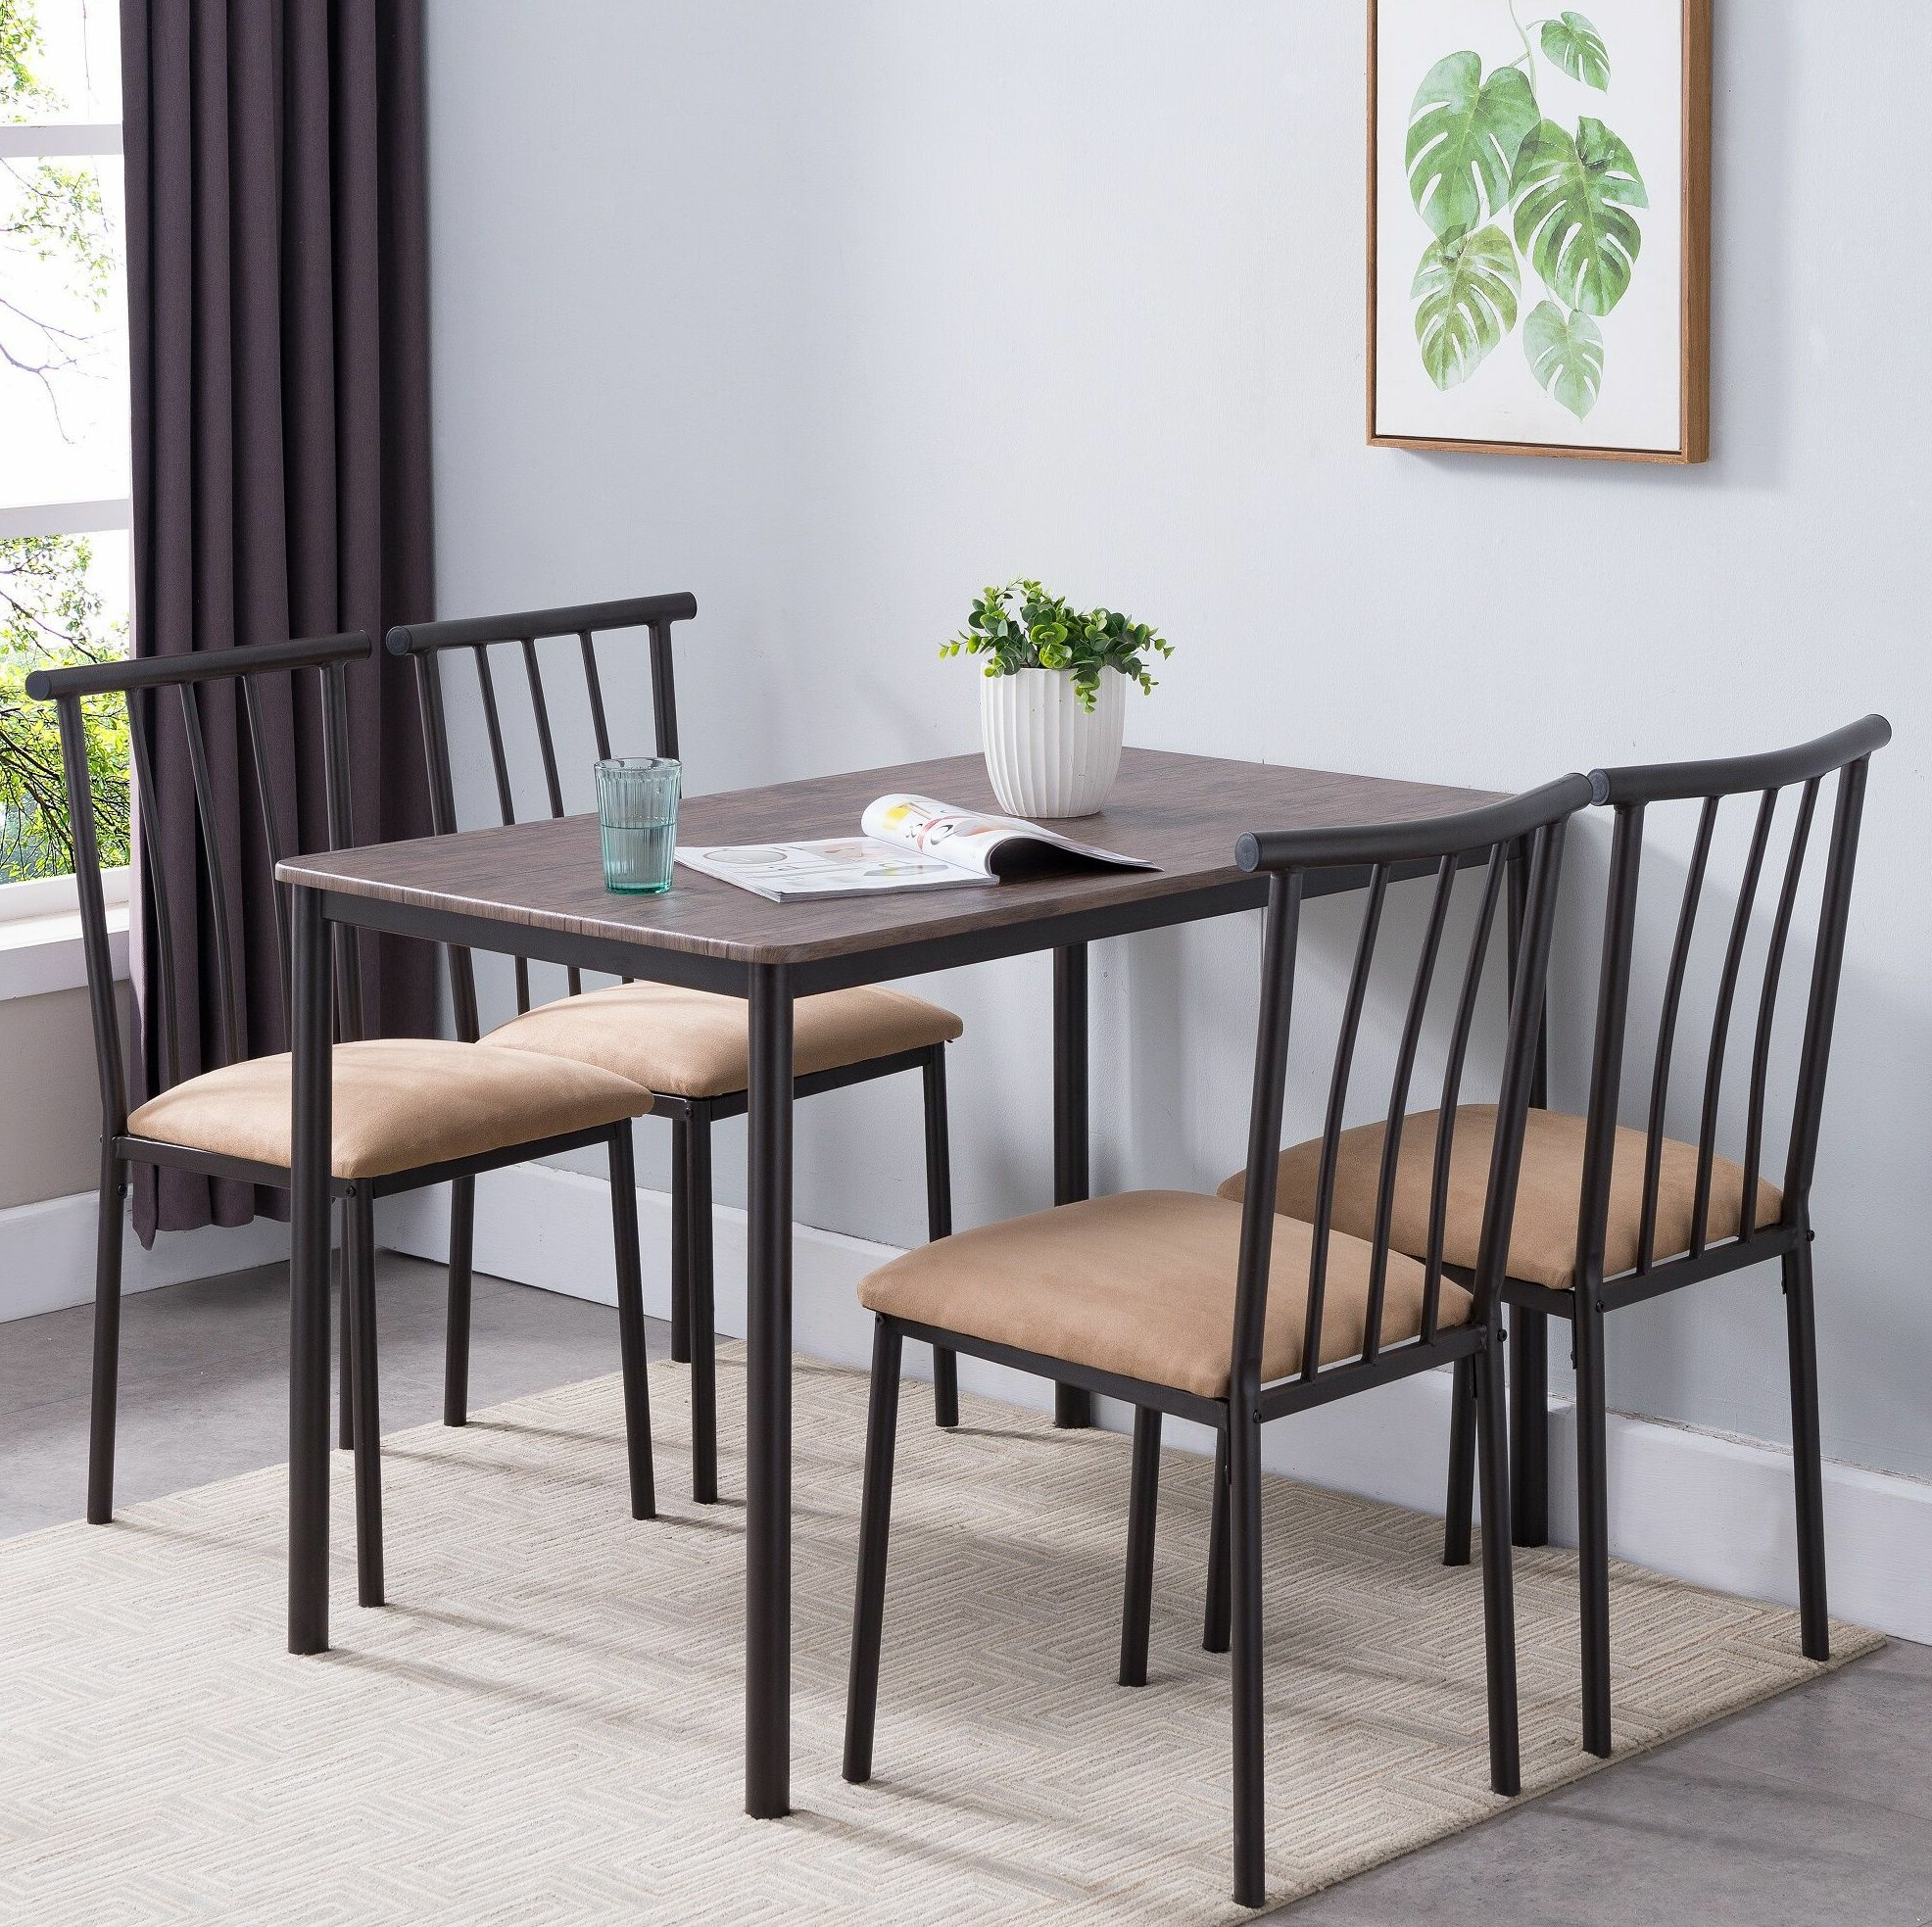 Telauges 5 Piece Dining Sets With Regard To Most Popular Winston Porter Stclair 5 Piece Dining Set (View 8 of 25)